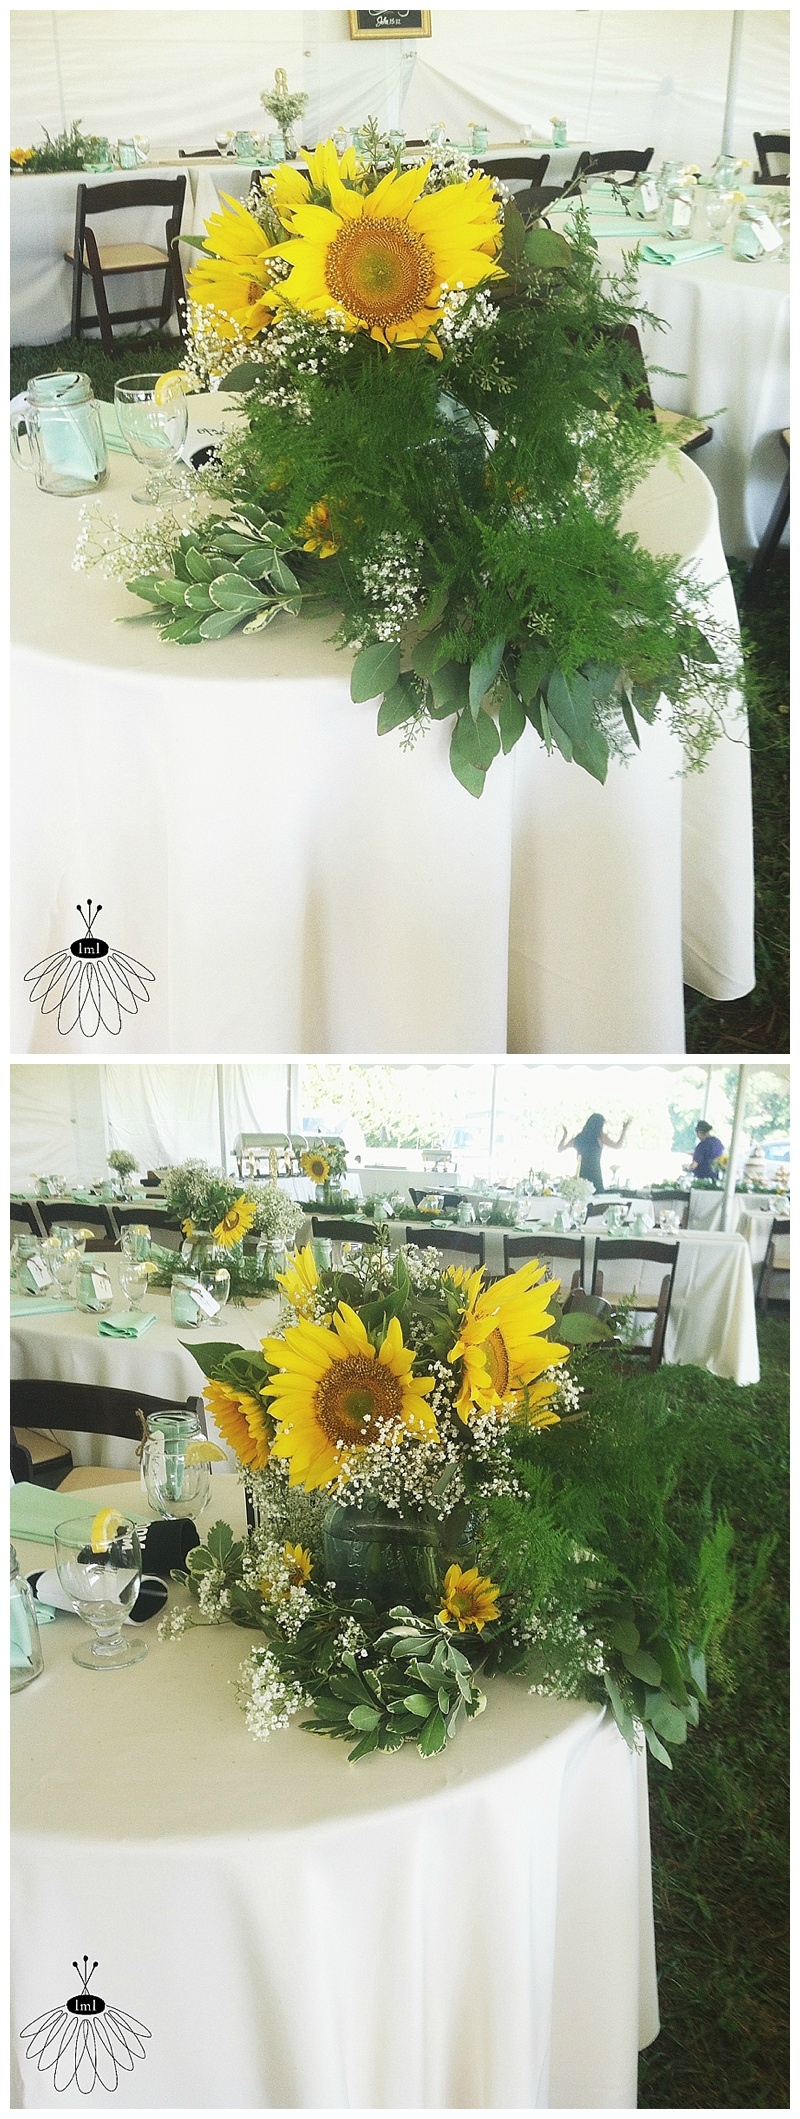 little miss lovely // ocean city md wedding florist // mint burlap sunflower wedding